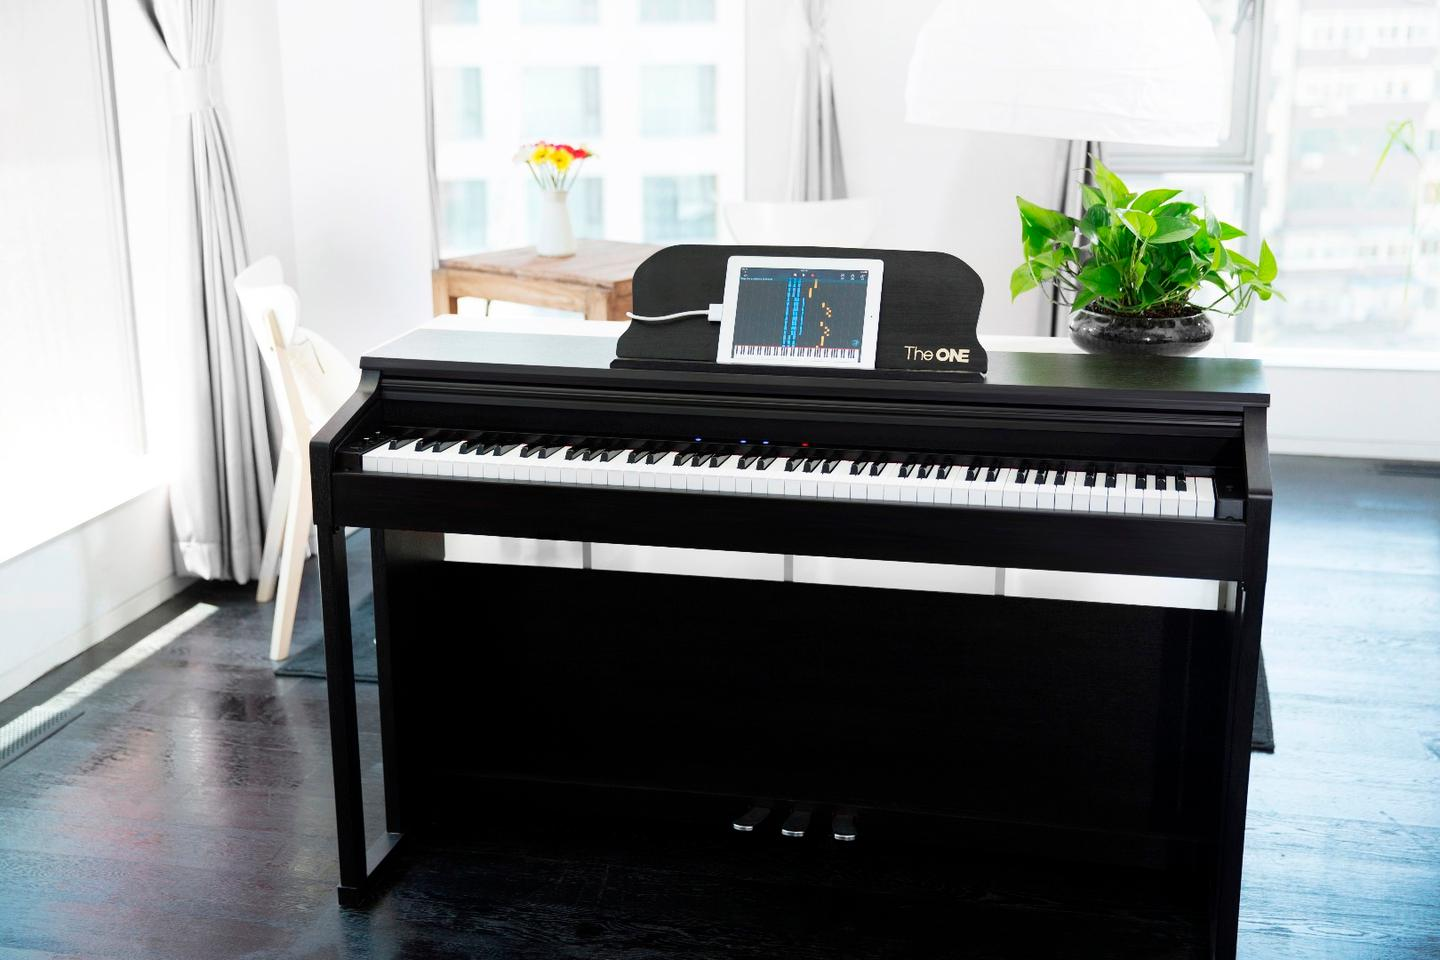 The One Smart Piano is reported to be the world's first and only upright, Apple MFi-certified piano